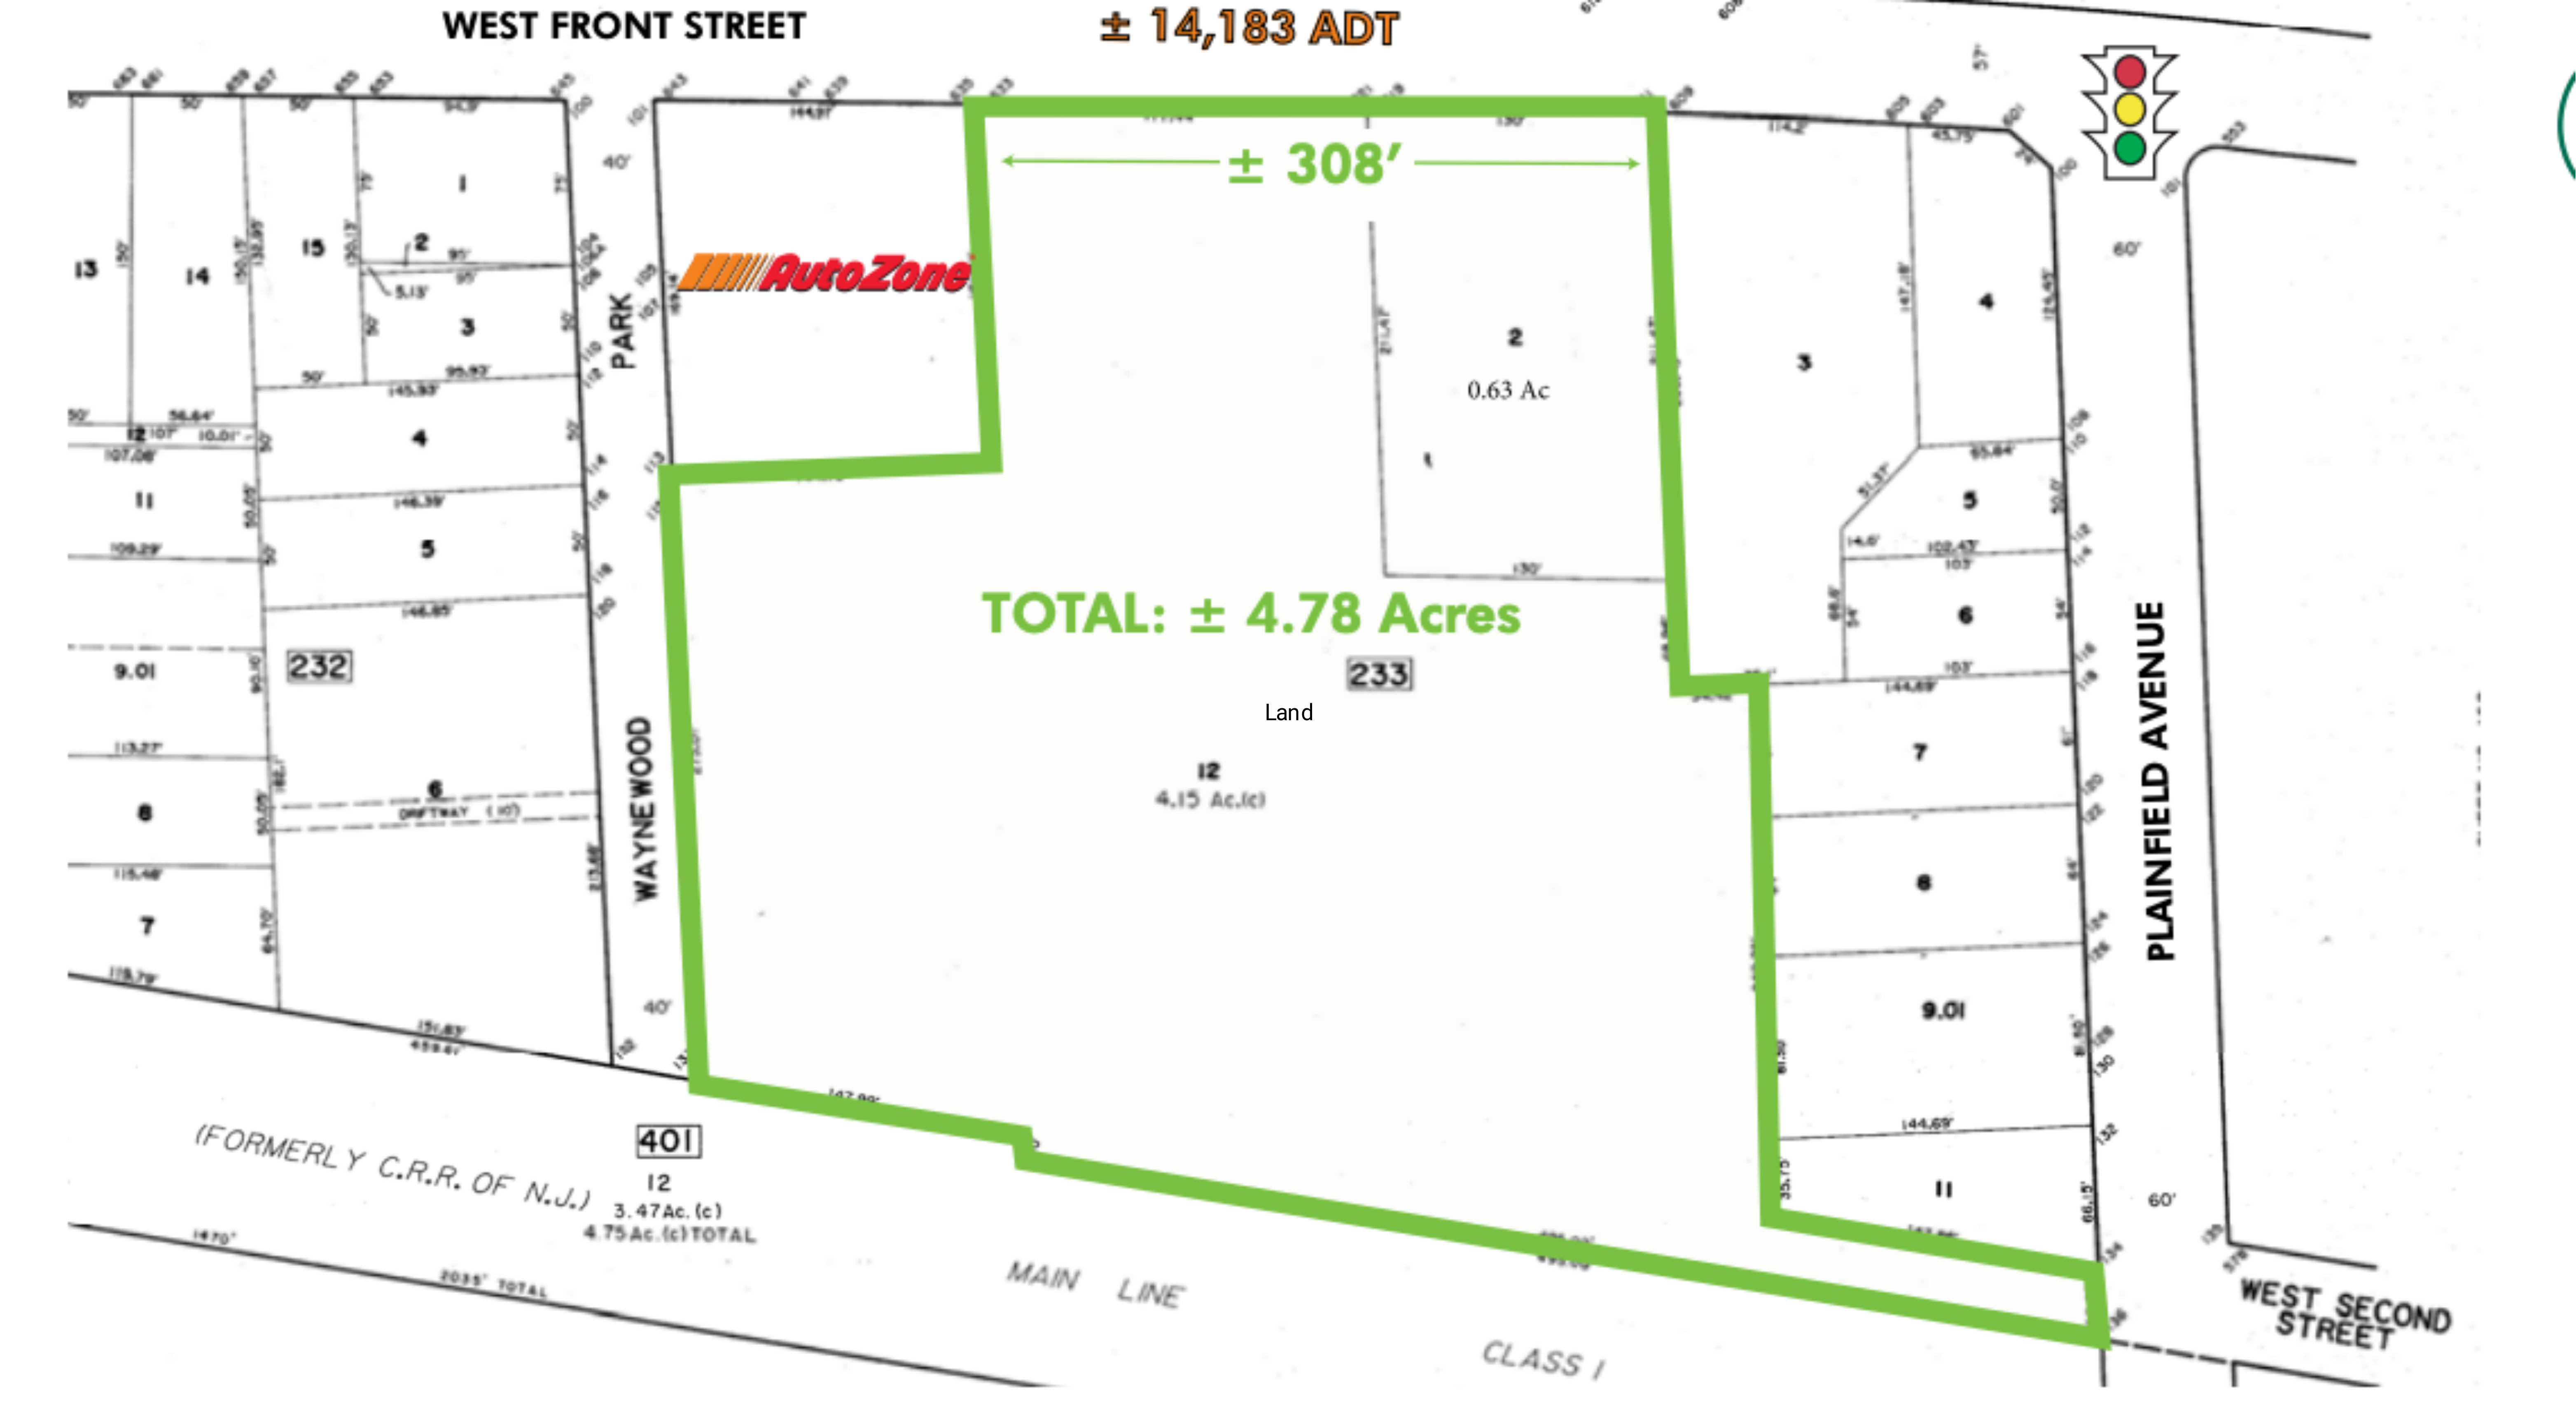 Land for Sale - Liccardi: site plan